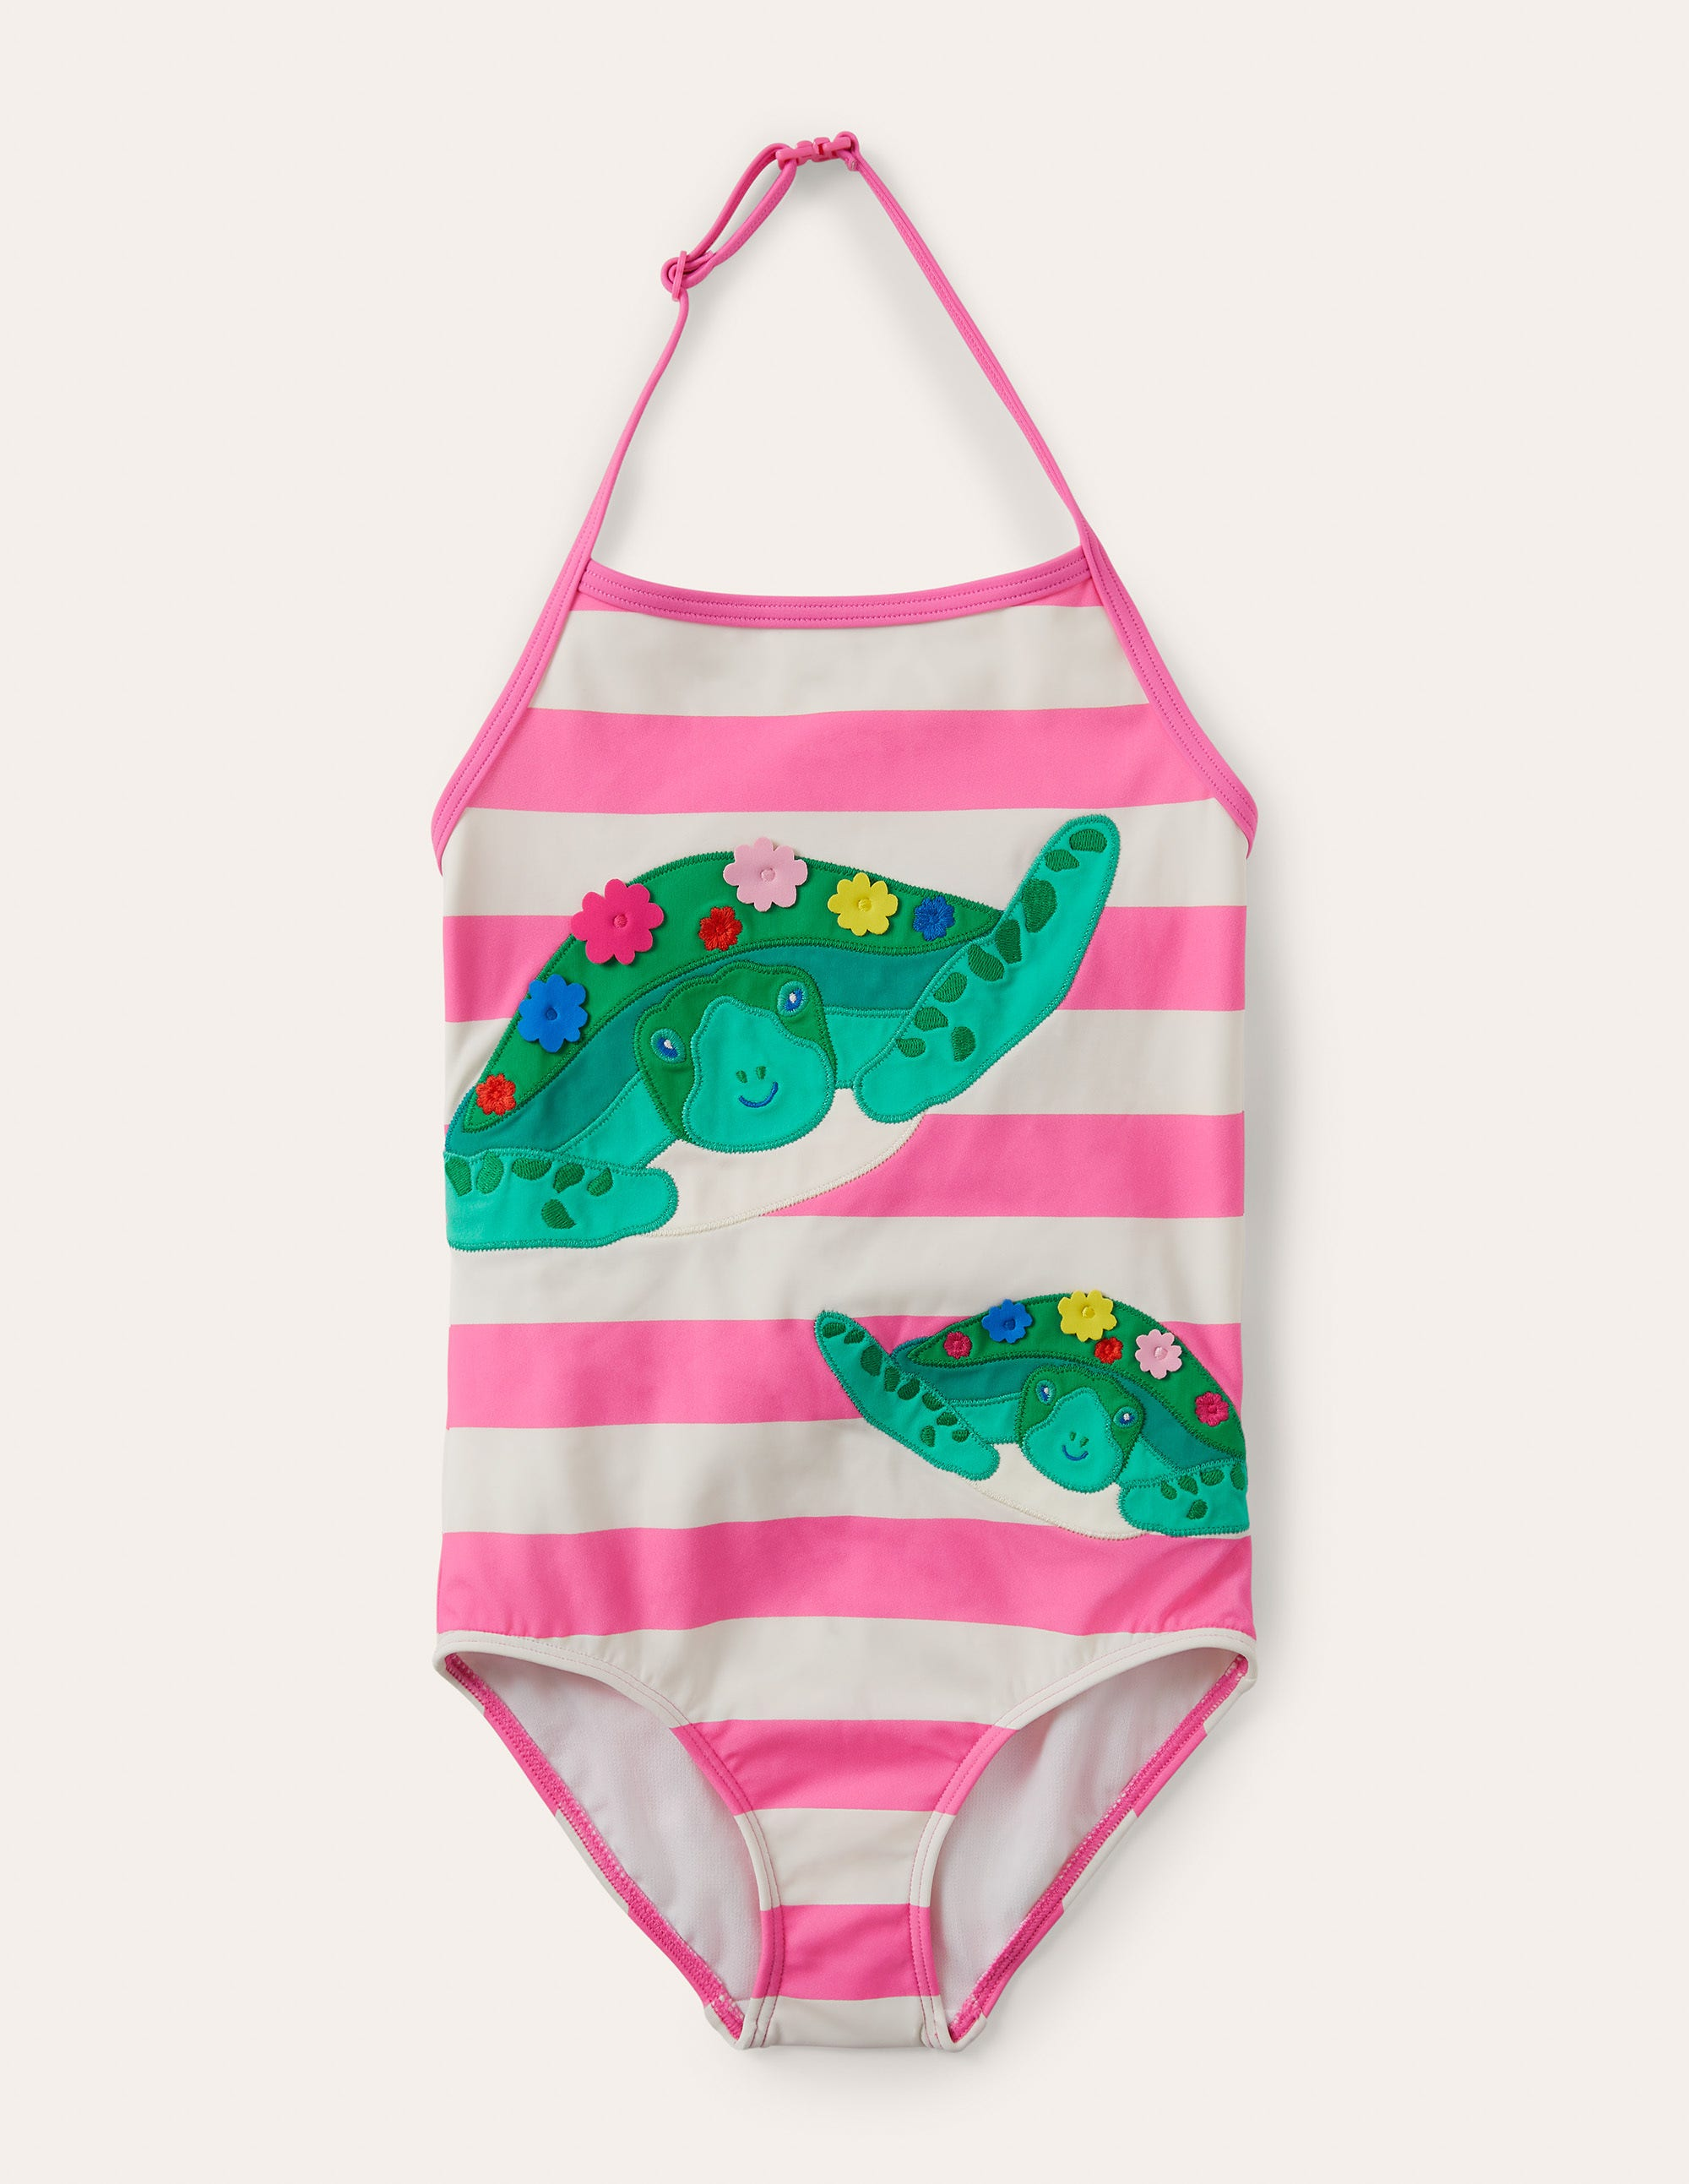 Boden Applique Swimsuit - Sweet Pink/ Ivory Turtles